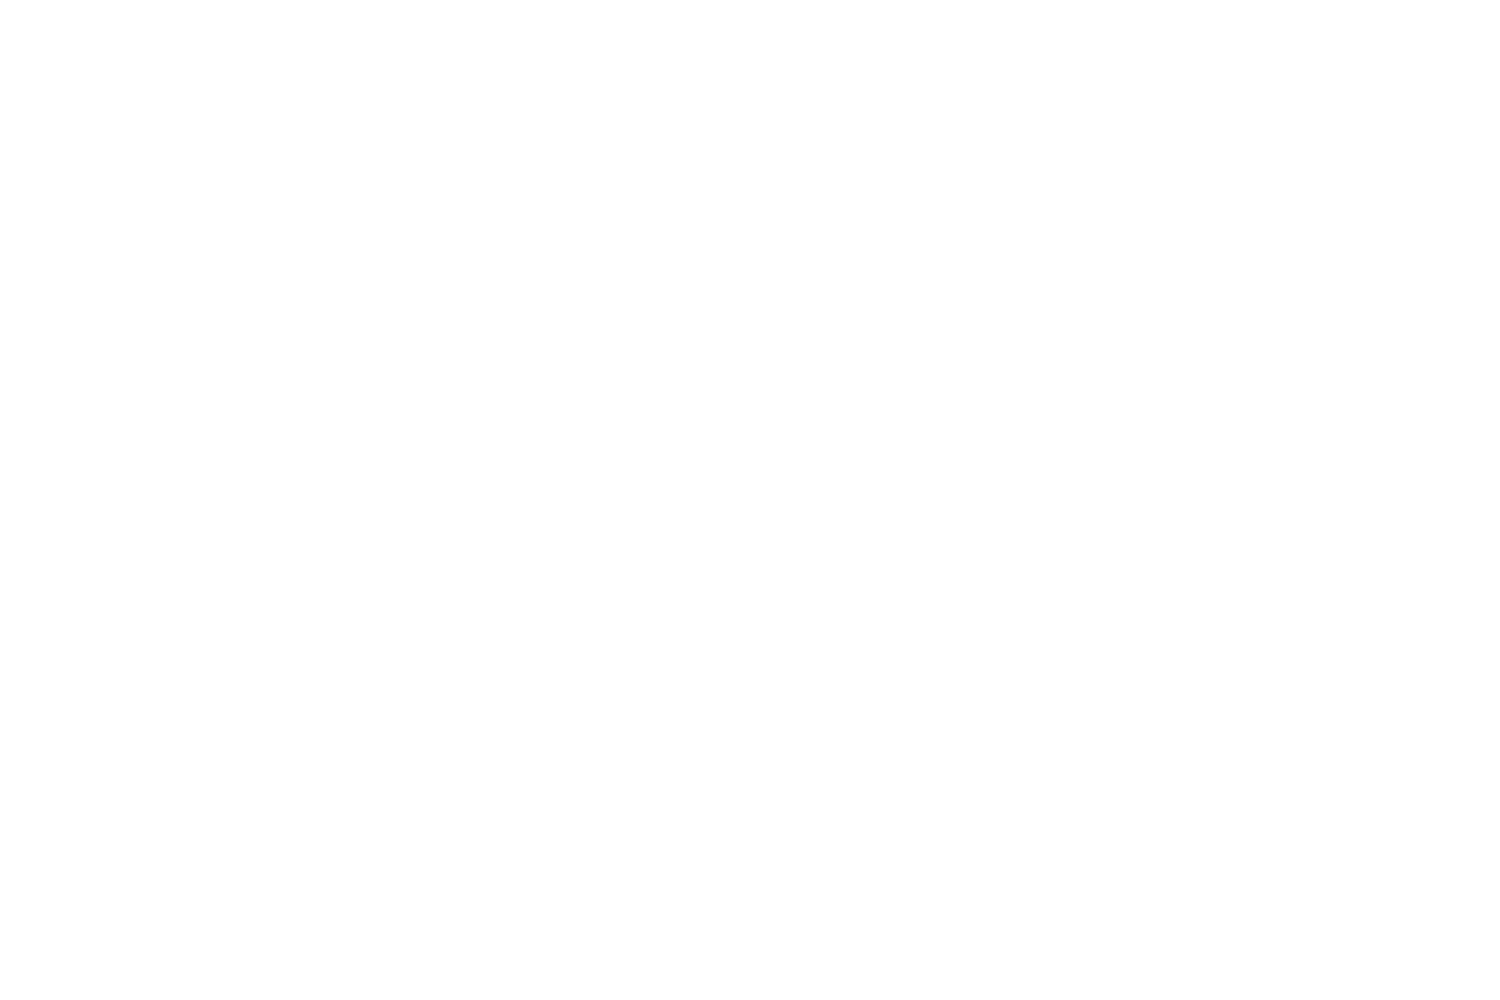 hvring40